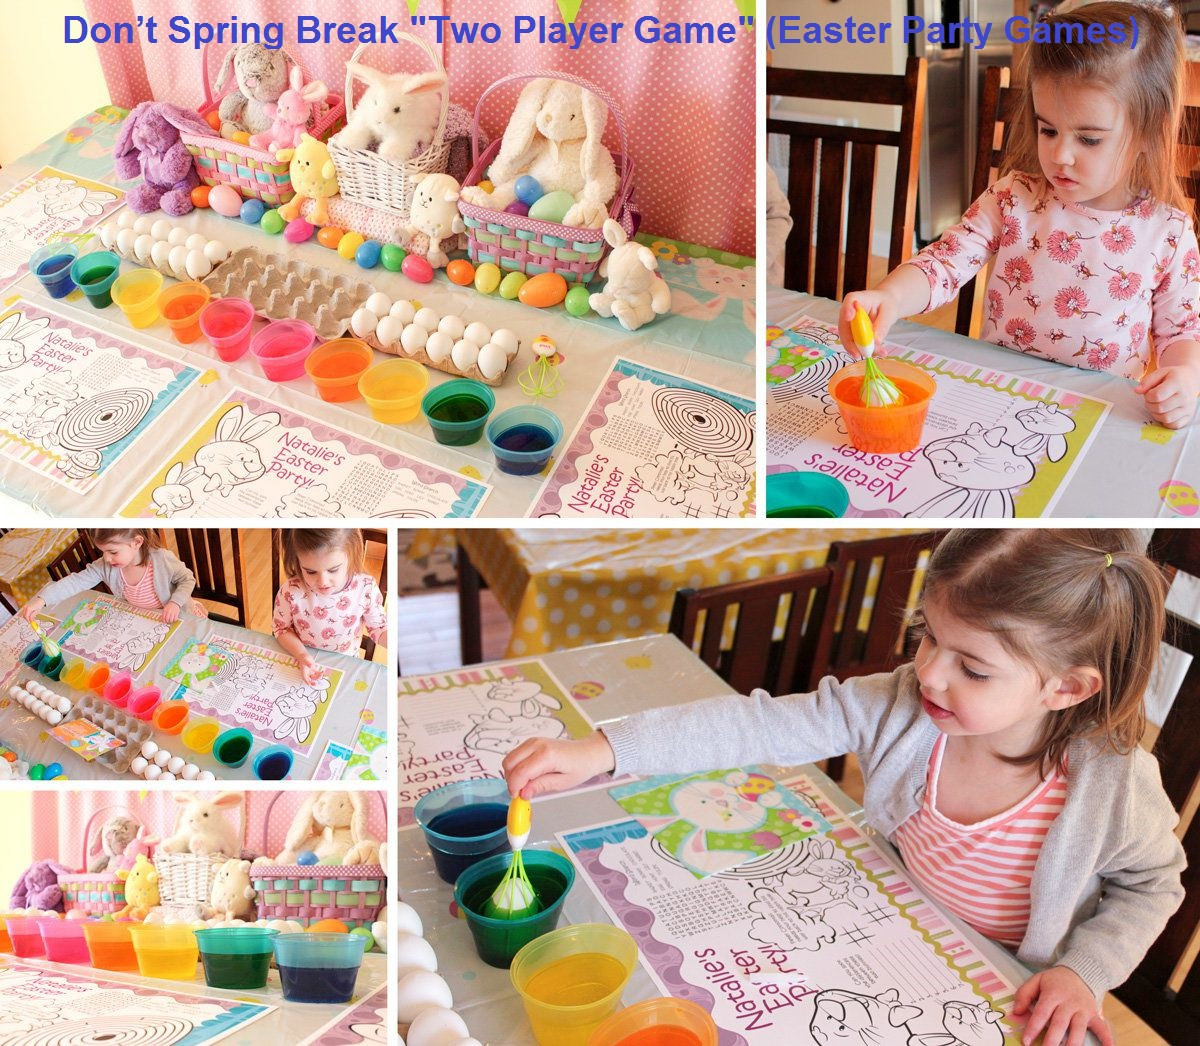 Easter Party Games For Kids  15 Best Easter Party Games For kids and Adults – Party